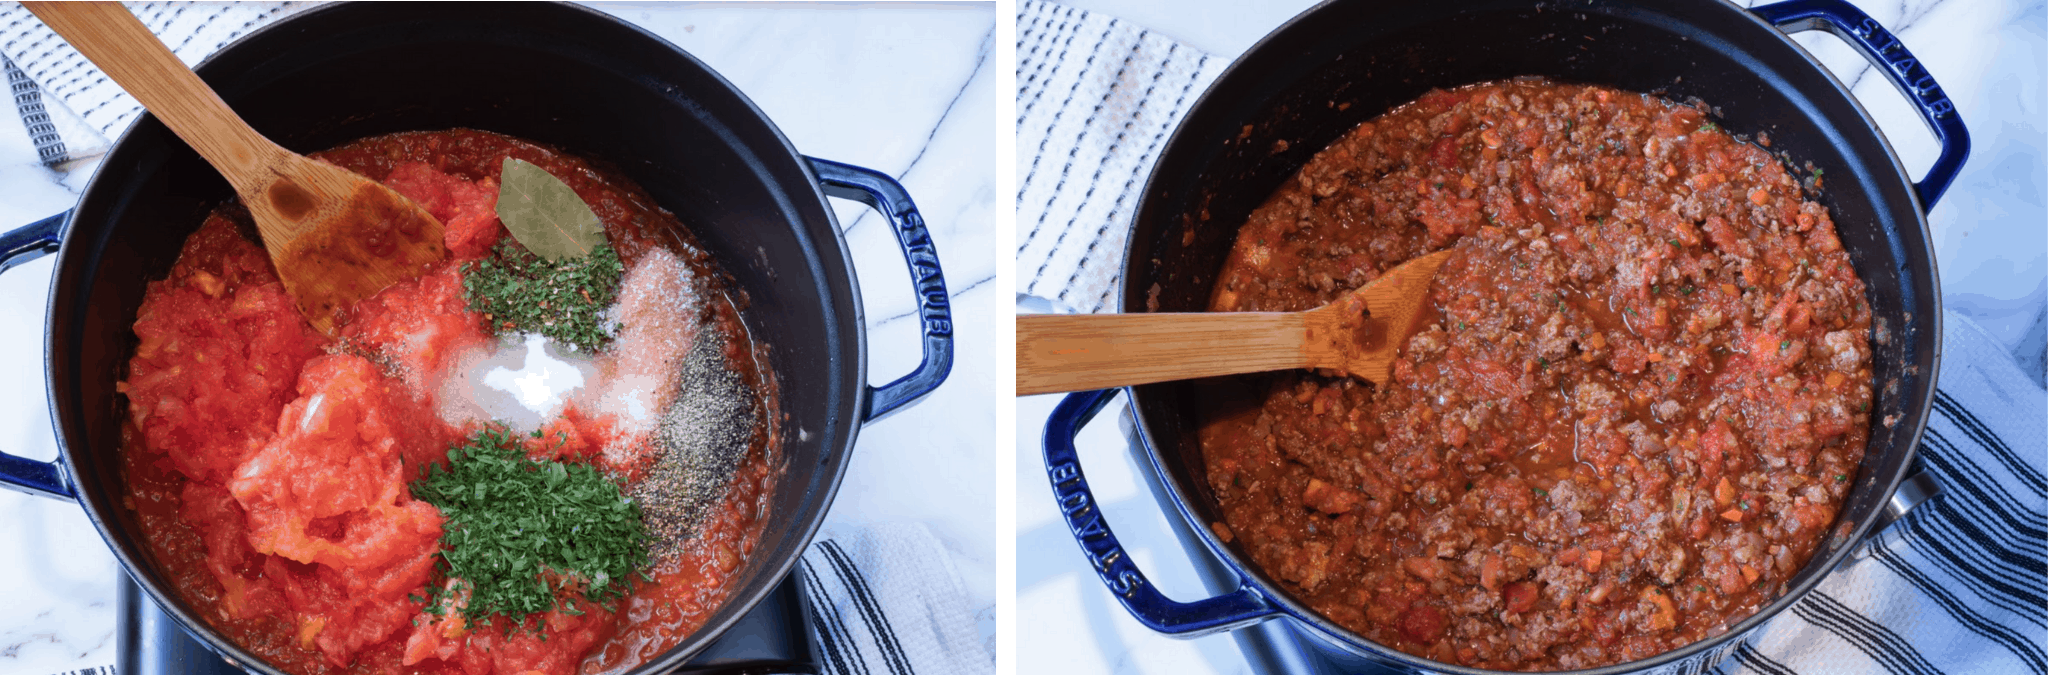 spaghetti with meat sauce romas meat